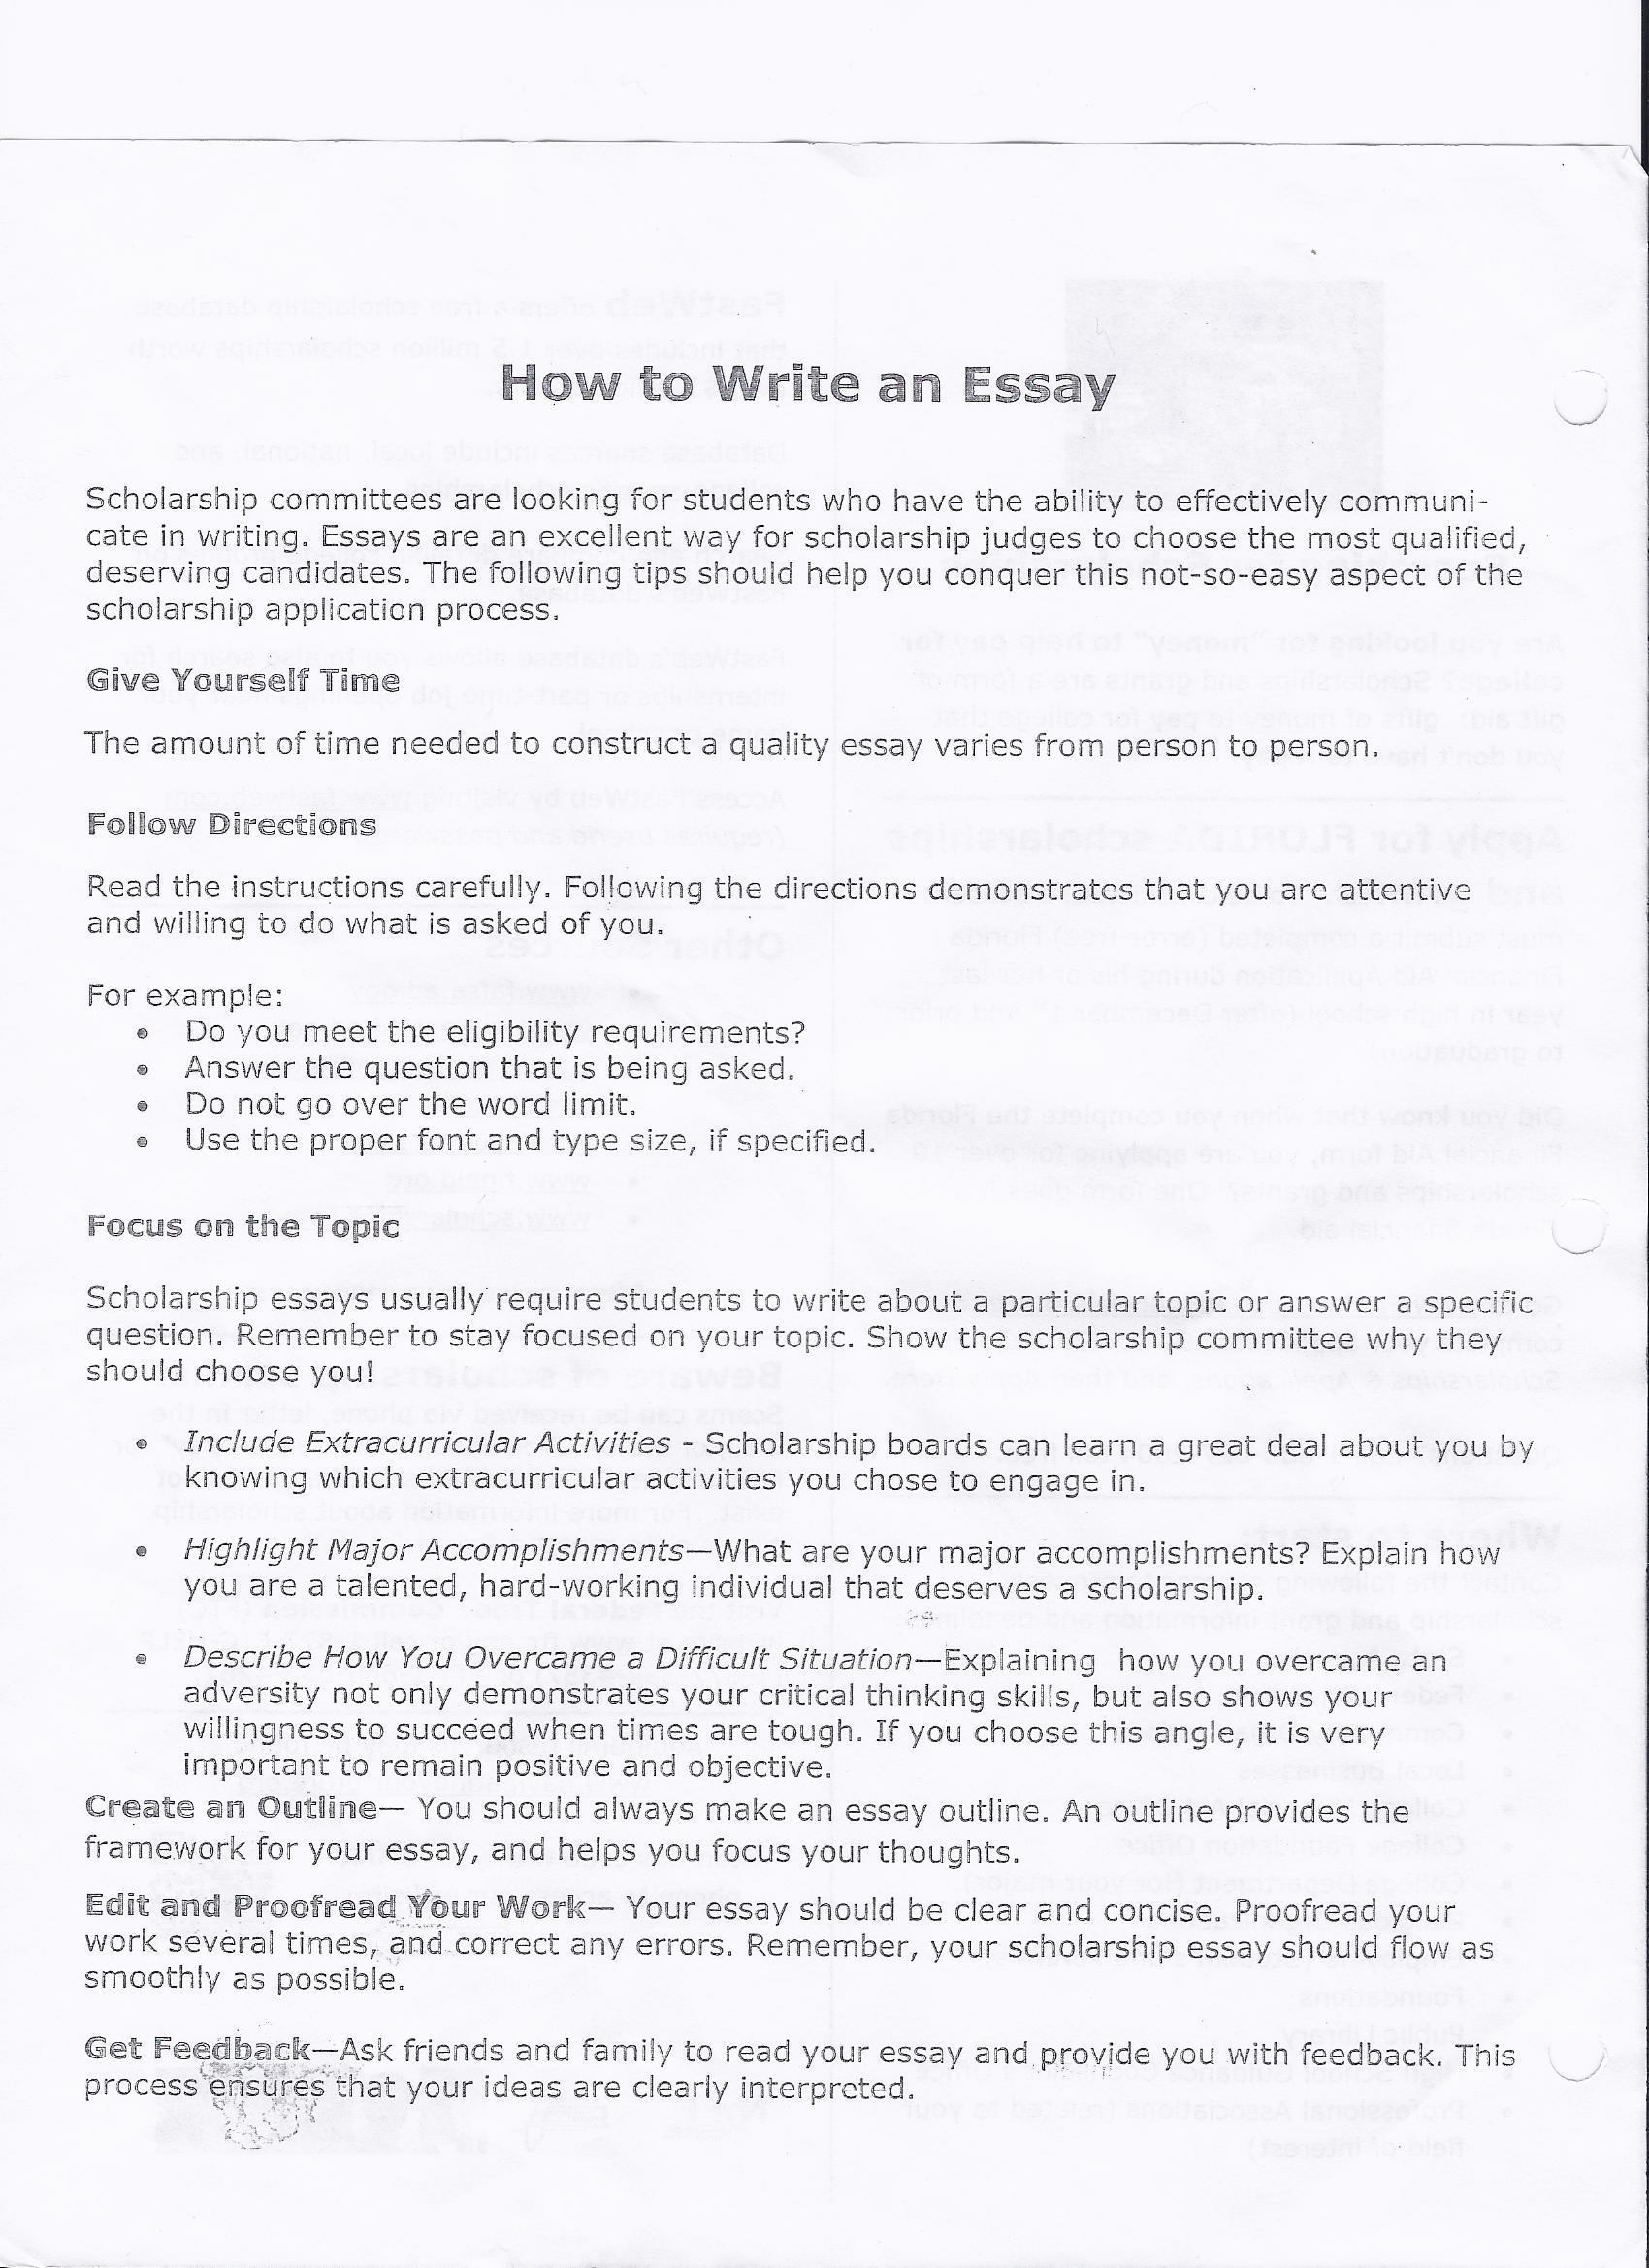 writing an essay paper for college Get academic essay writing help online from our proffesional writers our company is ready to offer college paper writing qualified writers low prices timely delivery.